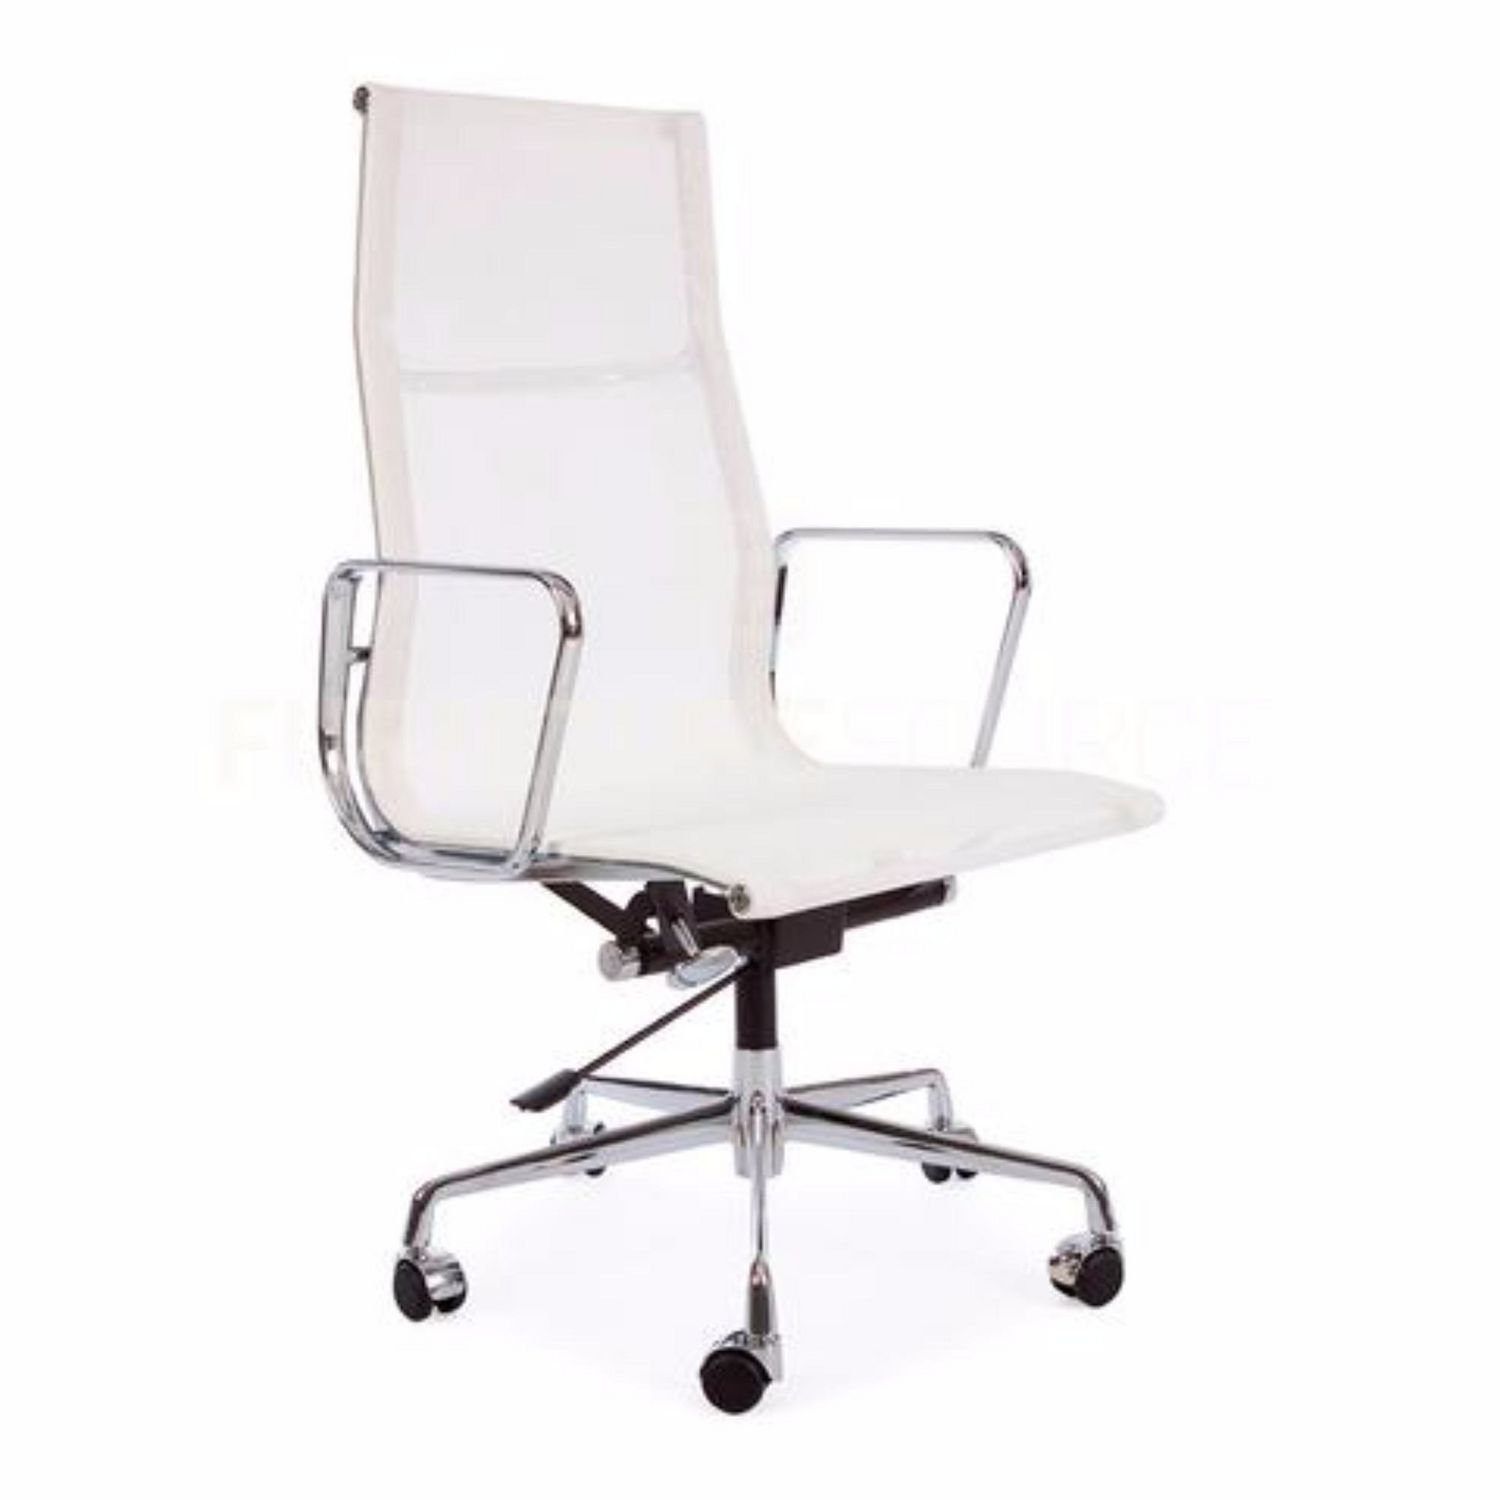 Nicer Furniture Tilt Adjustable Seat High Back Mesh Eames White Modern Executive Office Chair